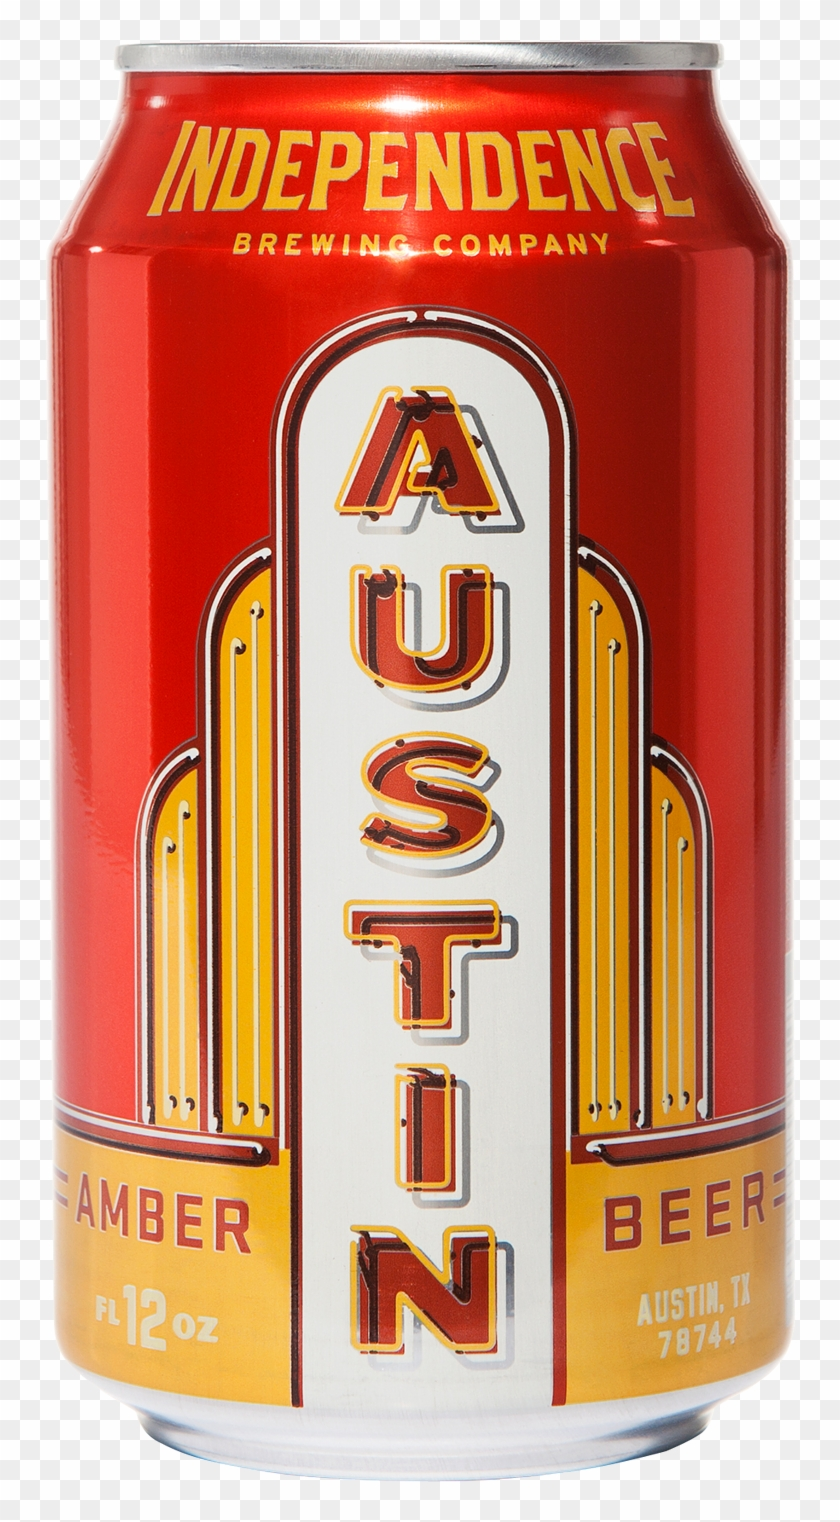 Austin Amber - Independence Austin Amber Clipart #1092426